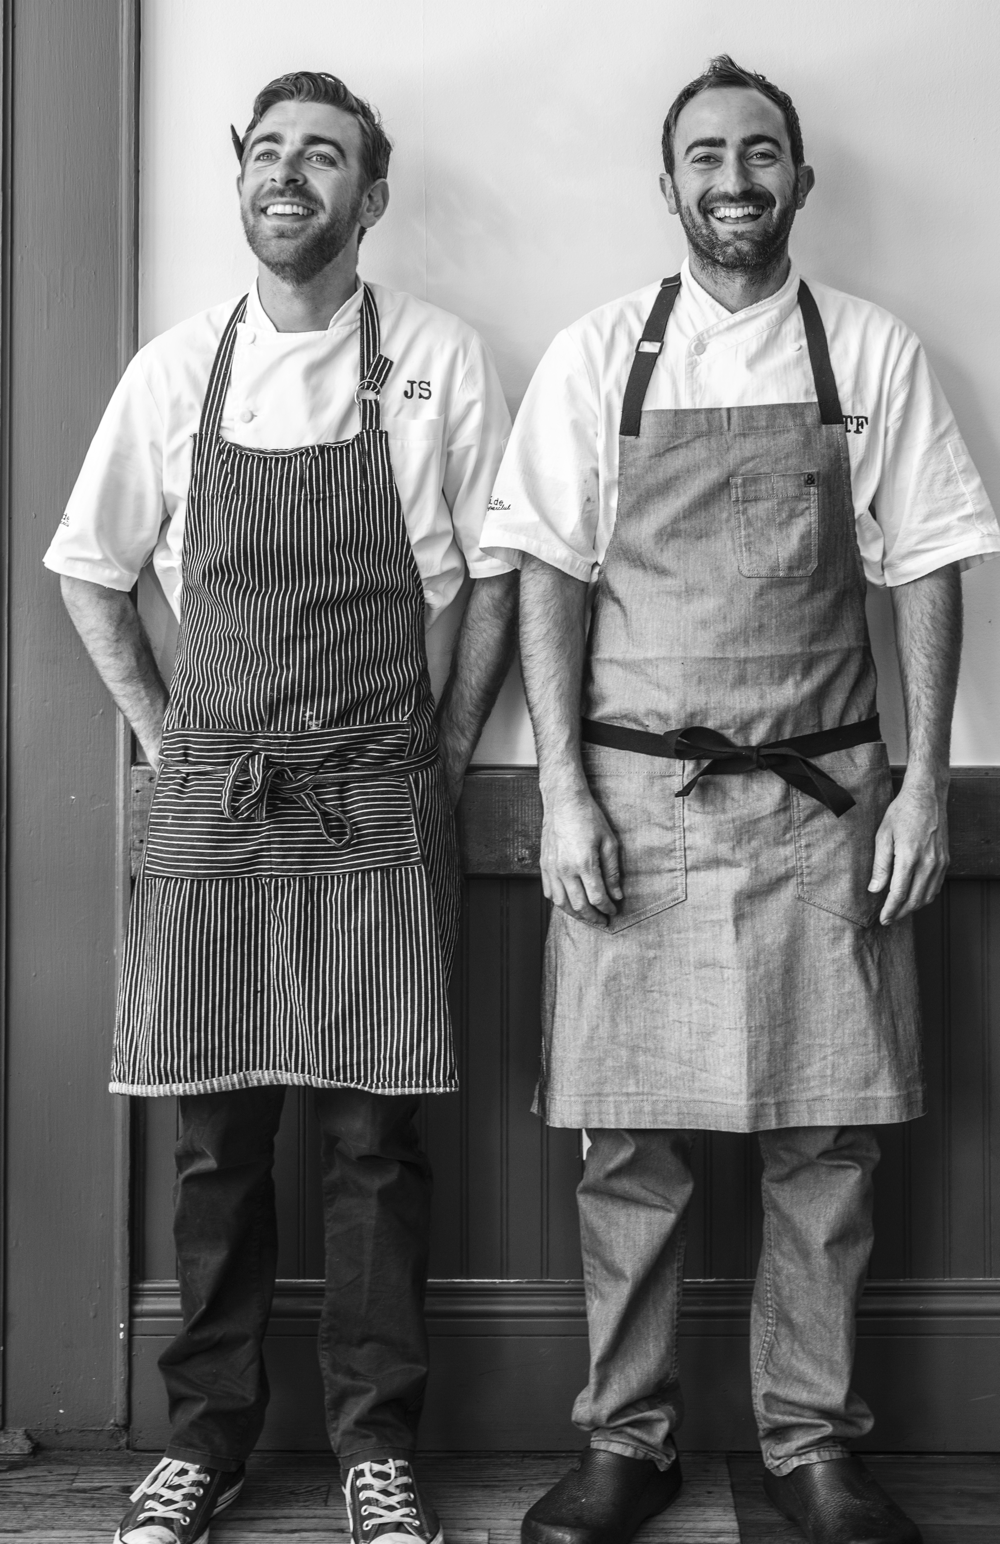 Jonathan Sutton (left) and Tony Ferrari (right), chefs and co-owners of the Hillside Supperclub. Photography ©Julie Ann Fineman.